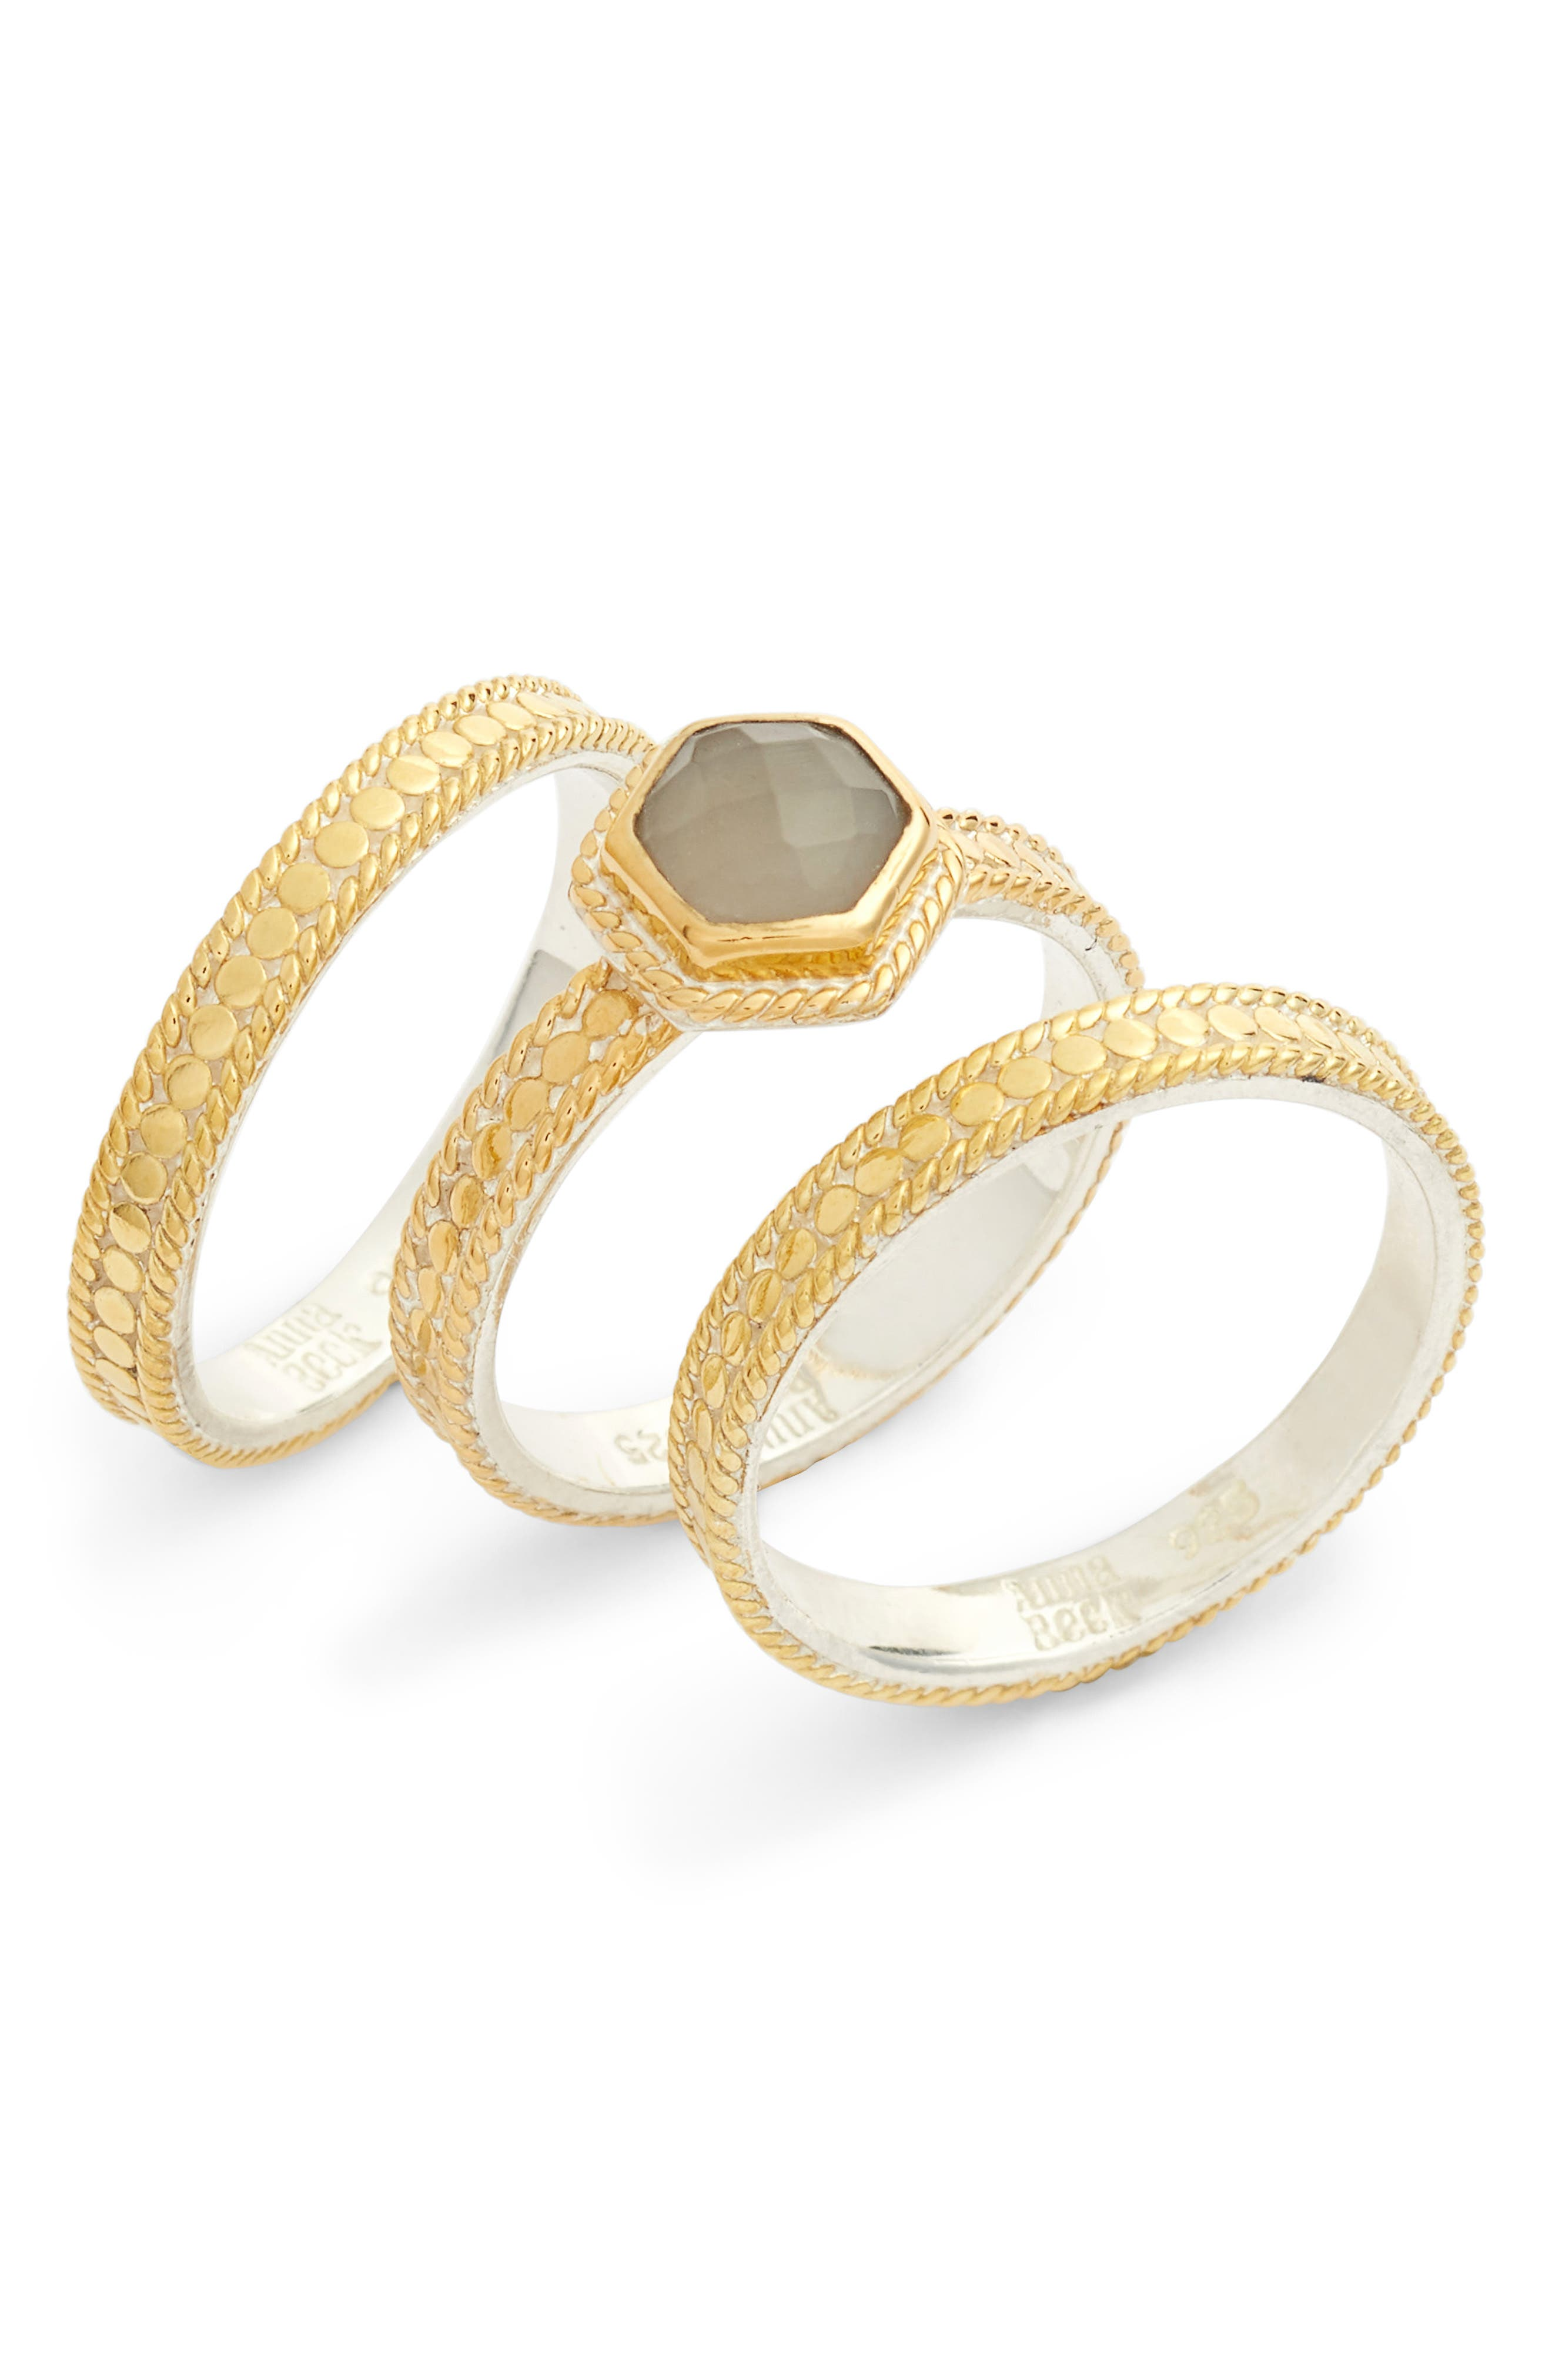 Anna Beck Grey Moonstone 3-Piece Stacking Ring Set